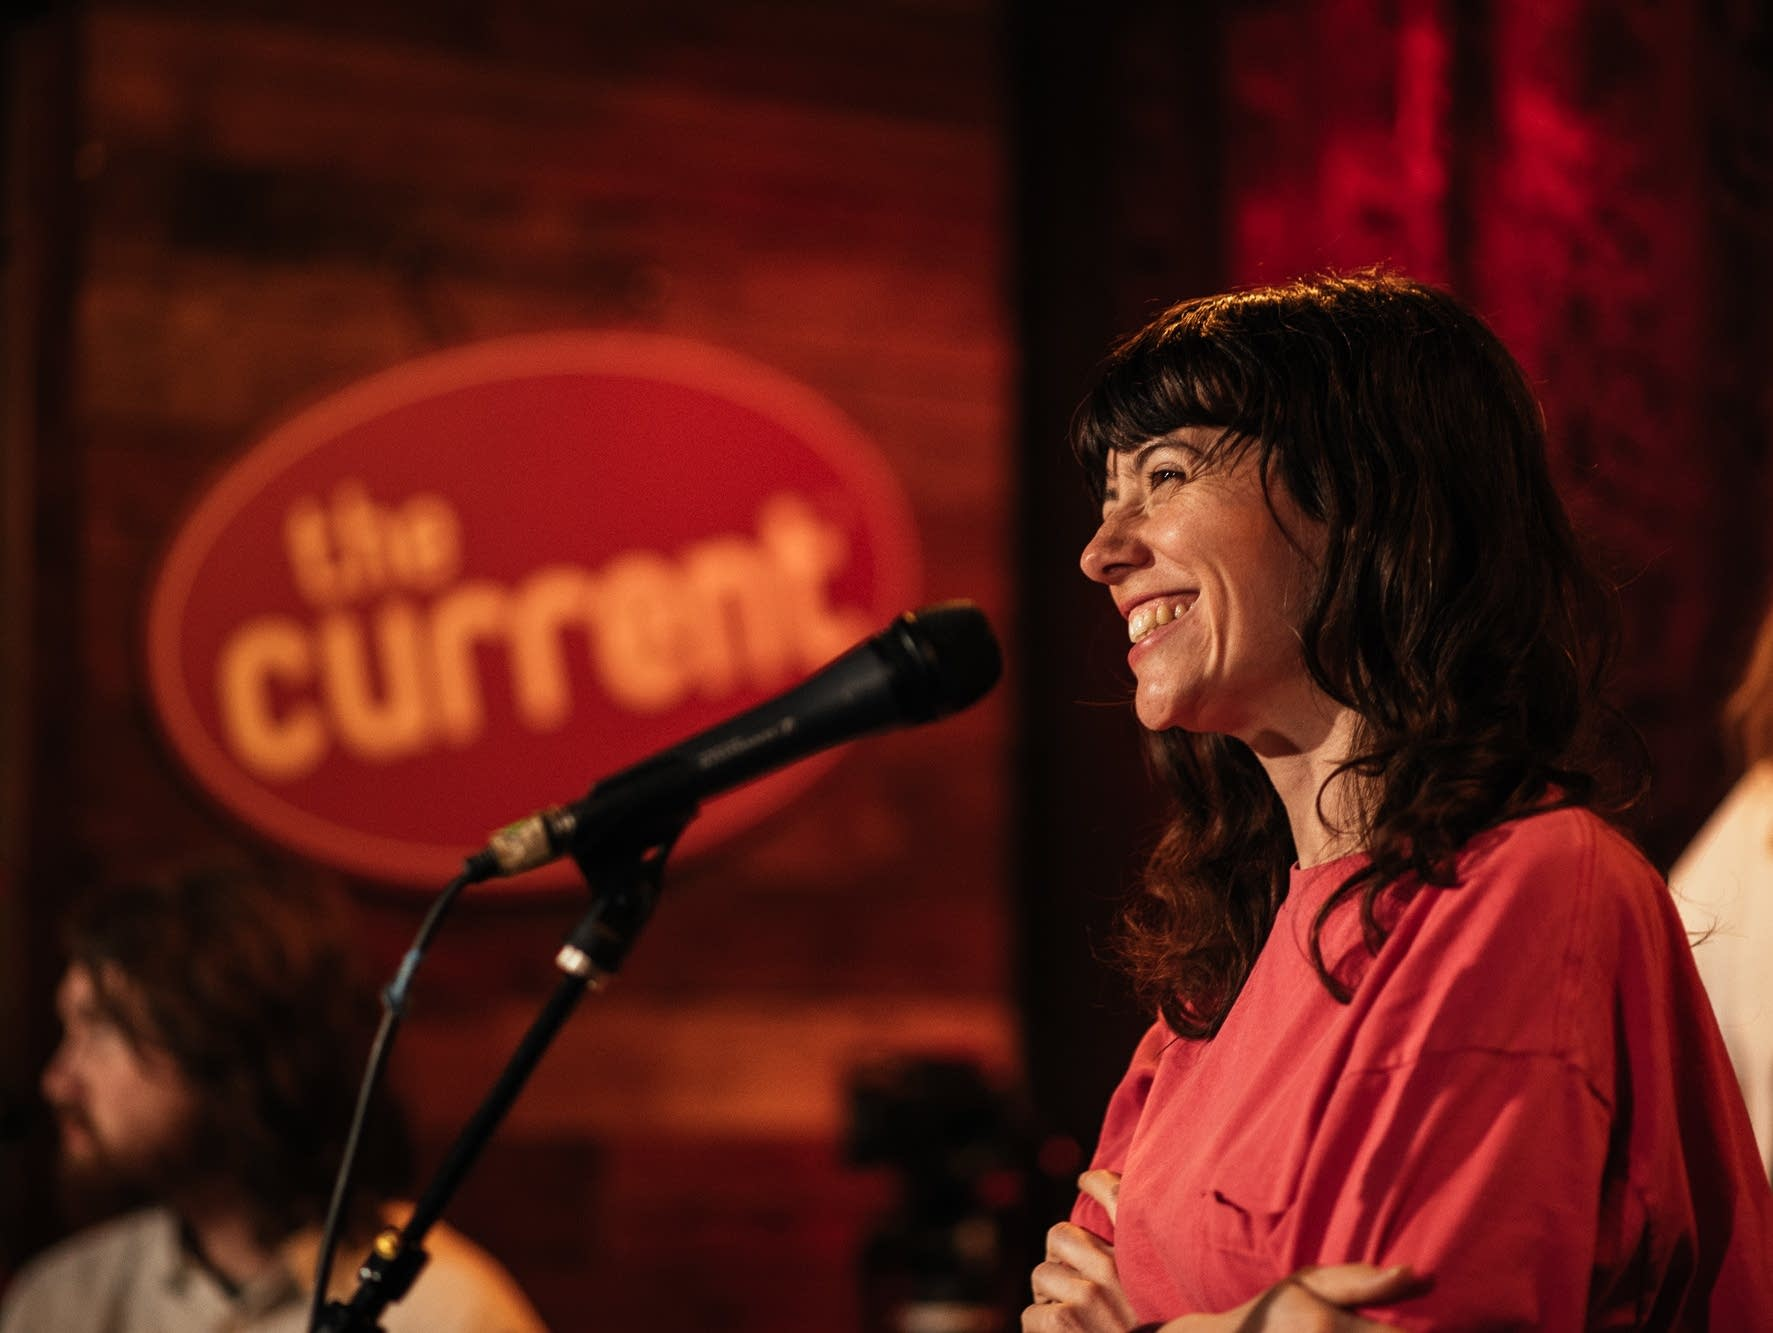 Natalie Prass performs at PledgeHouse during SXSW